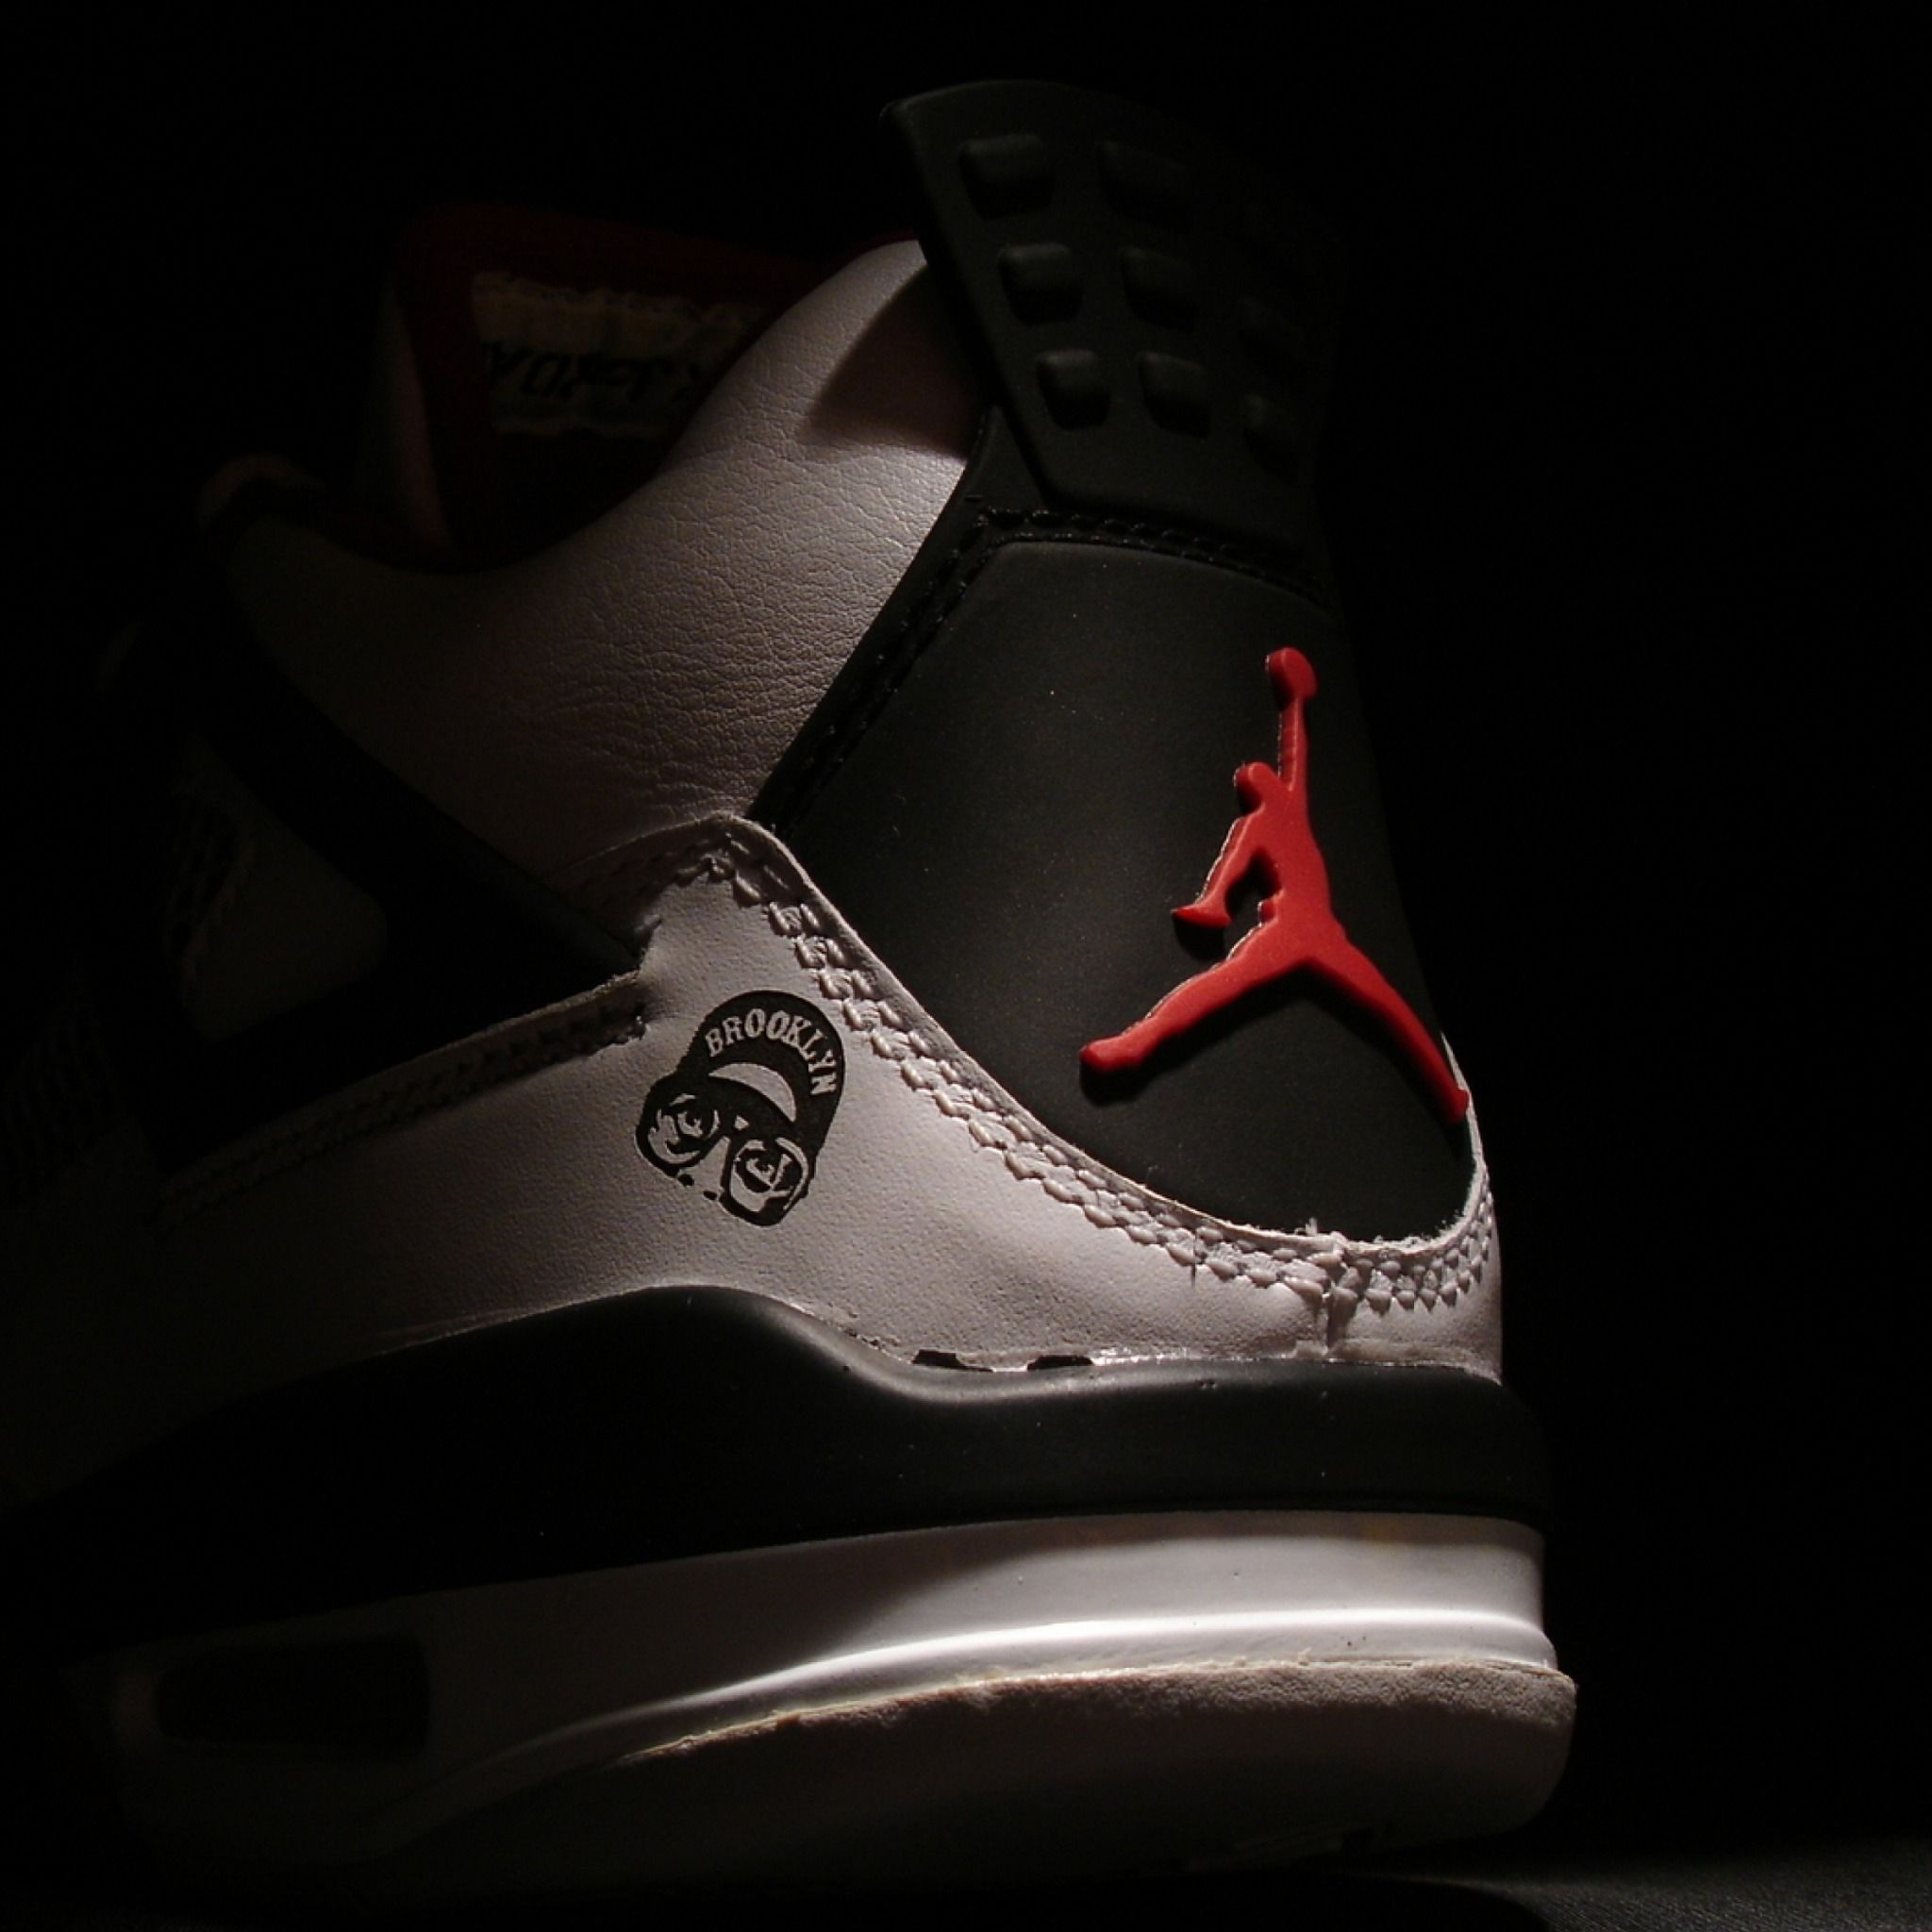 Jordan Mars - Tap to see more amazing air jordan shoes wallpaper! @mobile9